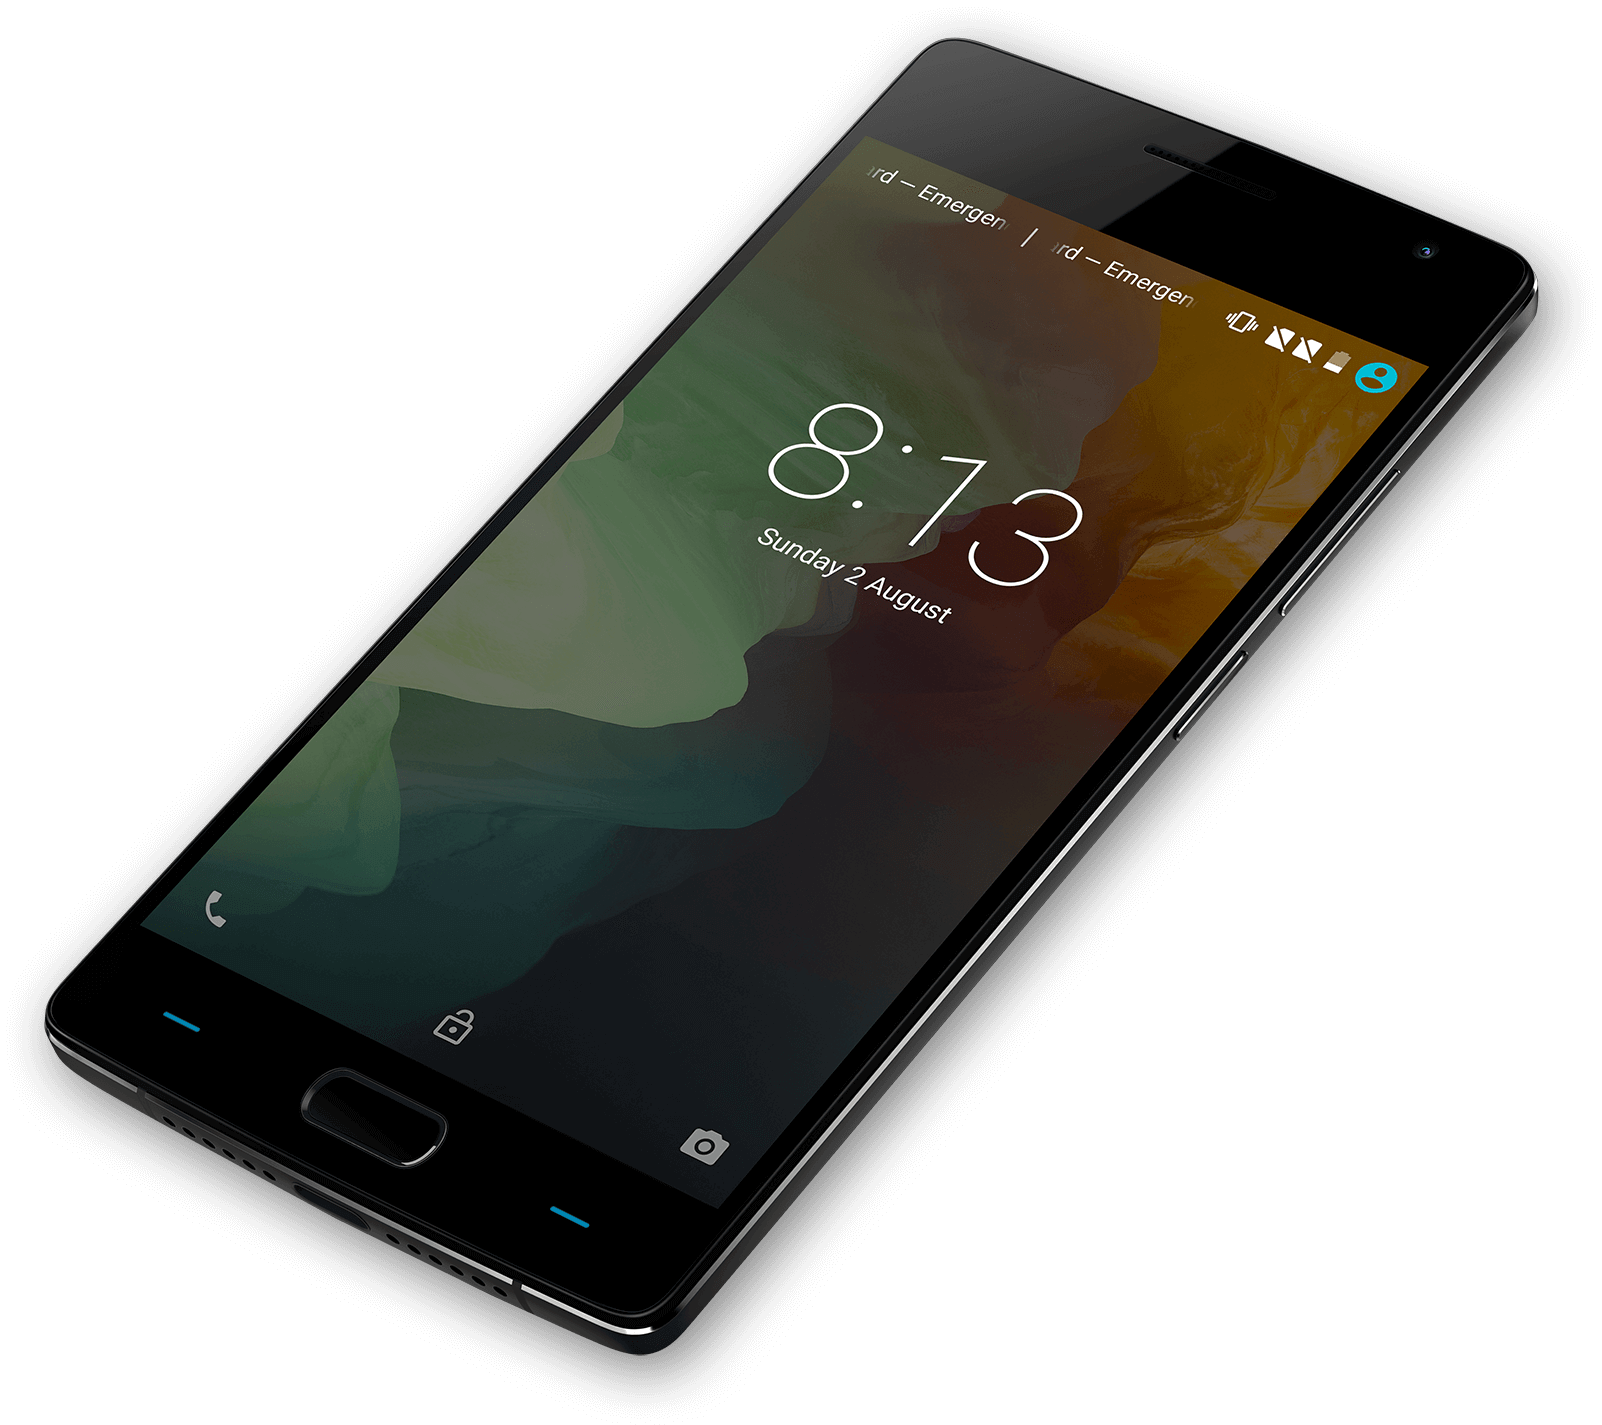 Backup EFS data on OnePlus 2 - How To Tutorial